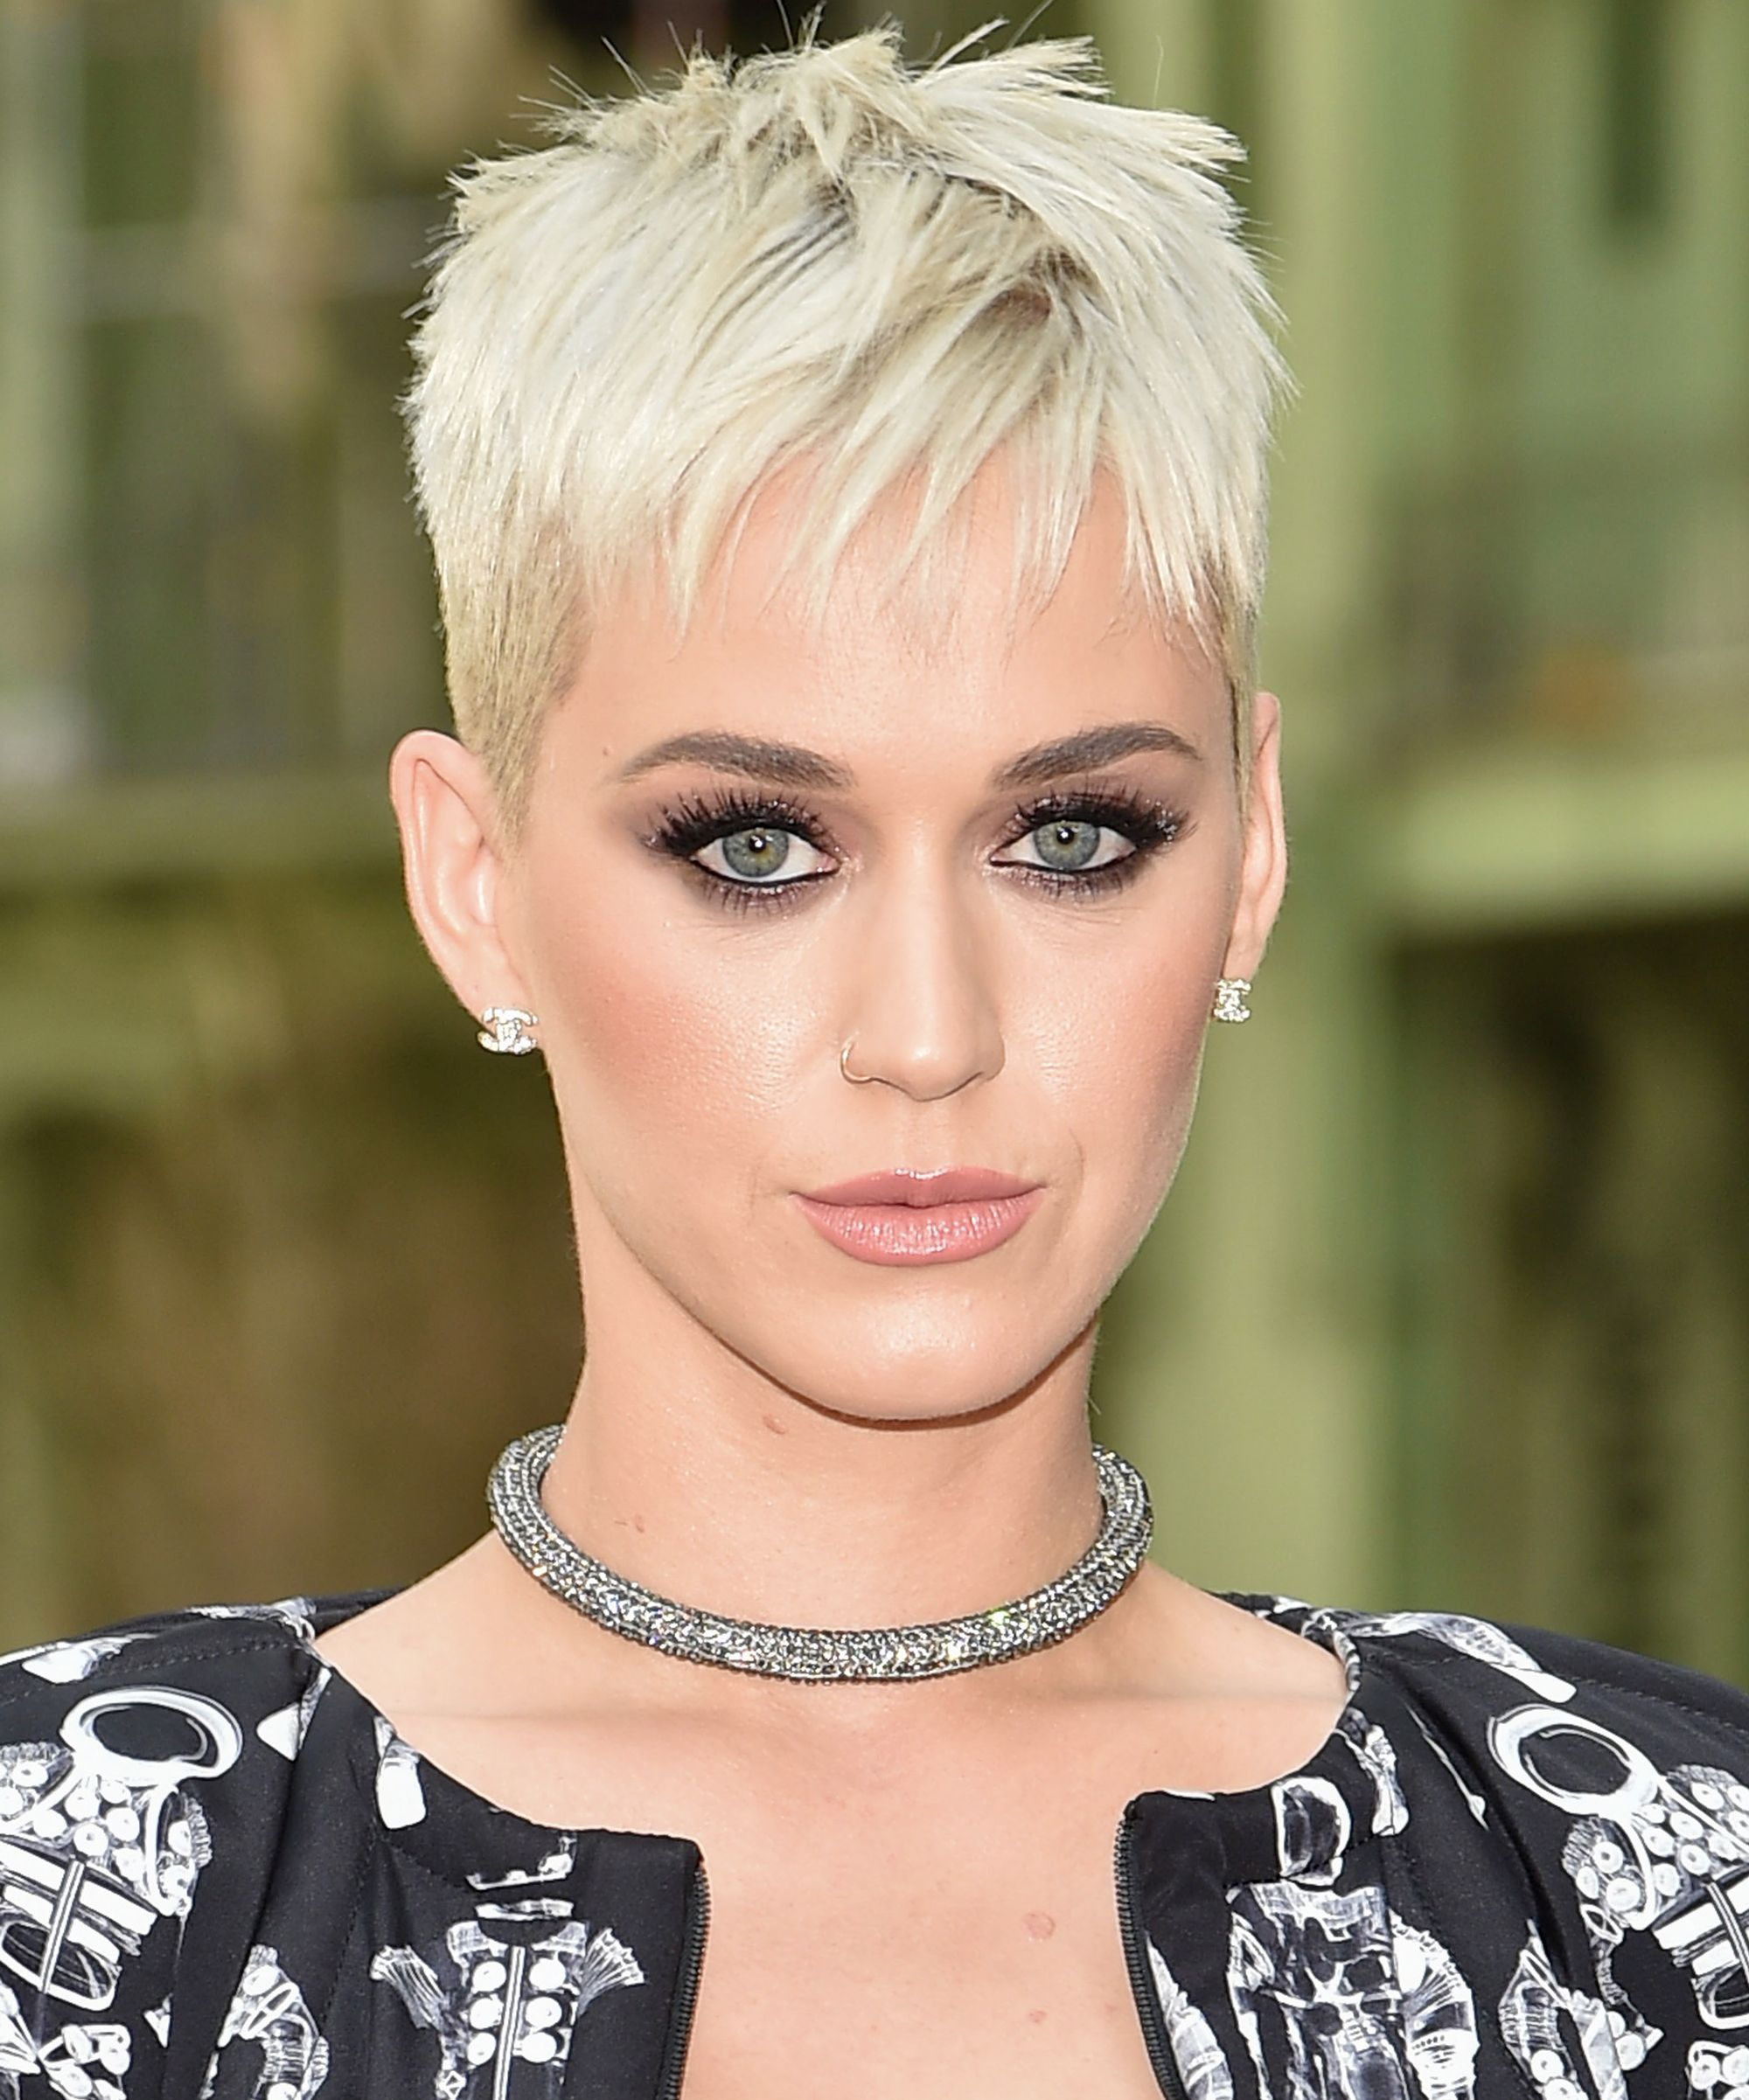 Celebrity Hair Styles: The Celebrity Short Hairstyles That Are Winning 2017